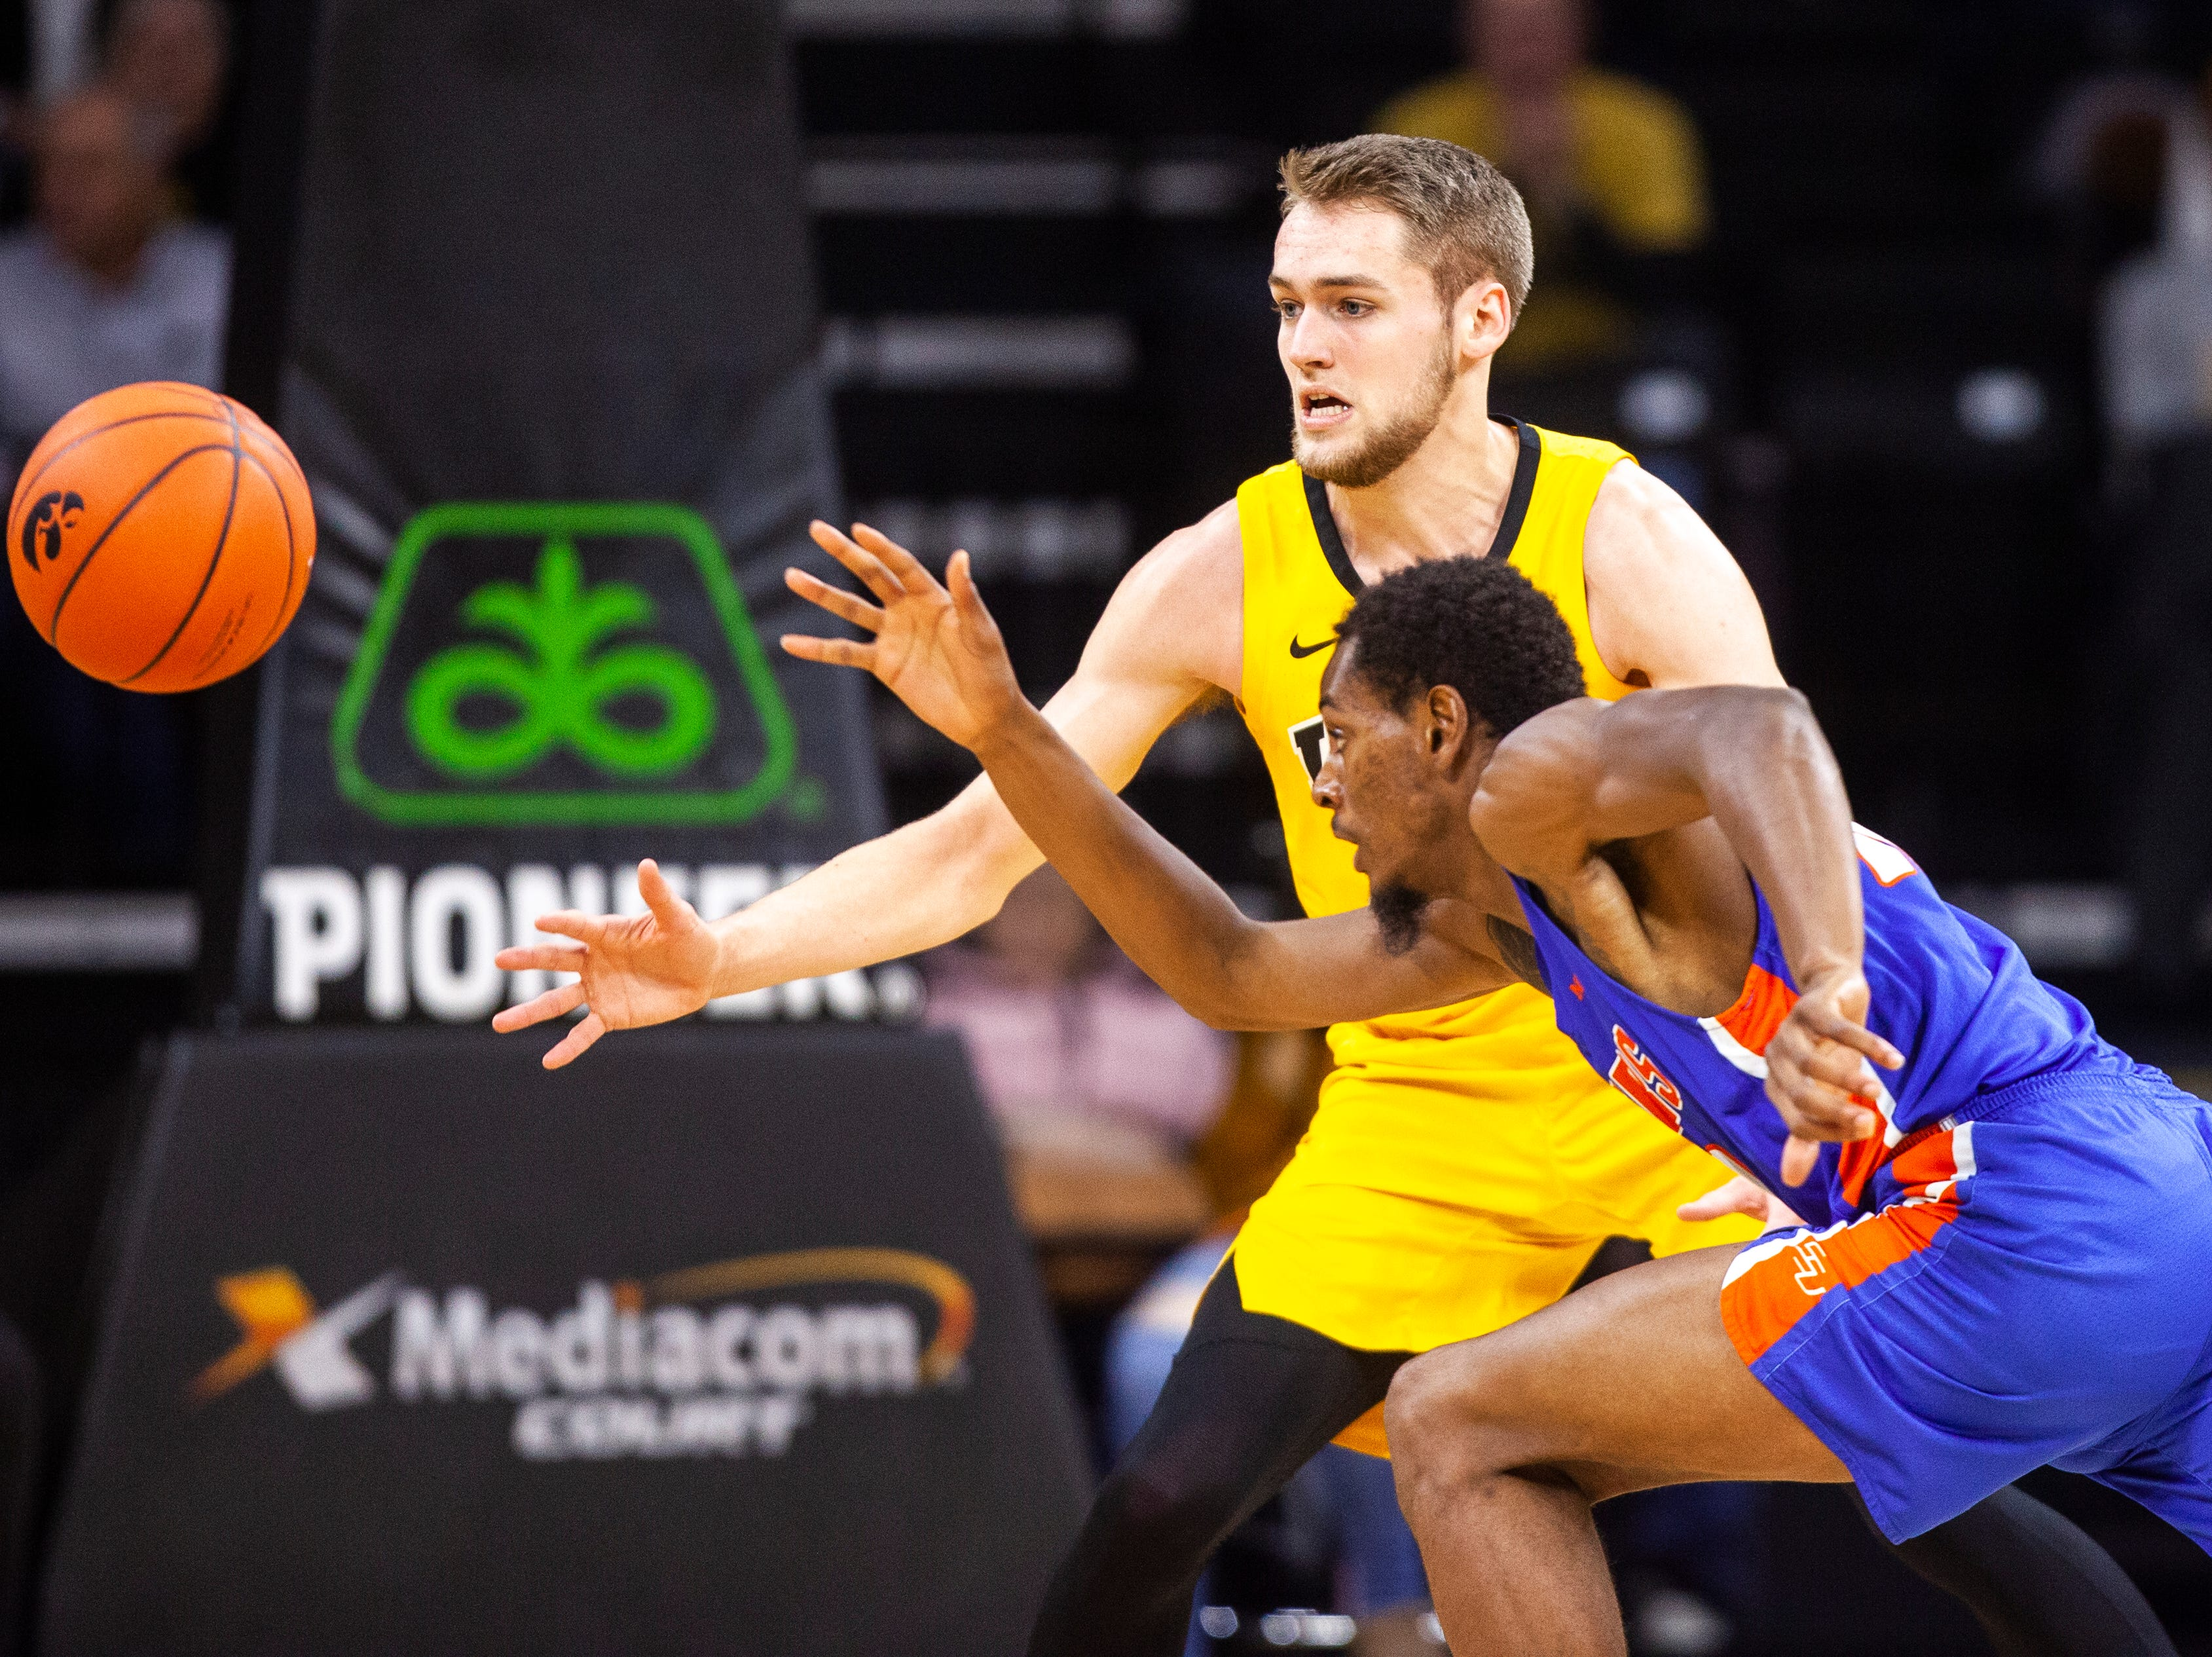 Iowa forward Riley Till (20) chases down a ball away from Savannah State forward Tyrell Harper (00) during a NCAA men's basketball game on Saturday, Dec. 22, 2018, at Carver-Hawkeye Arena in Iowa City.